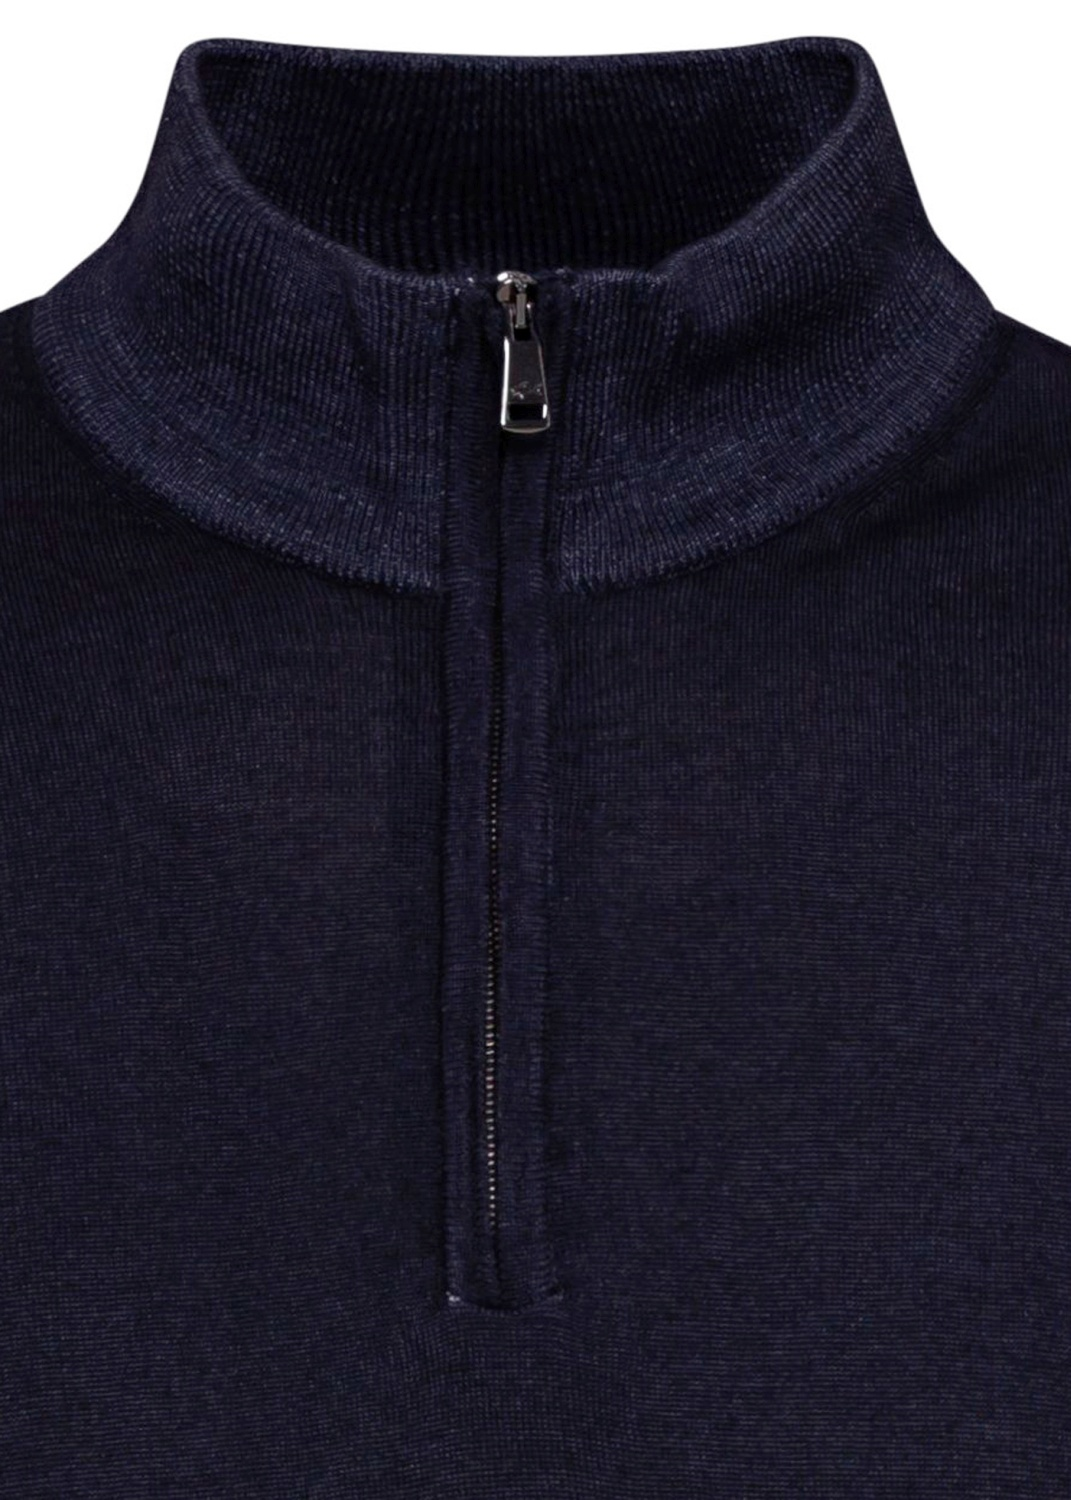 MEN'S KNITTED SWEATER C.W.WOOL image number 2